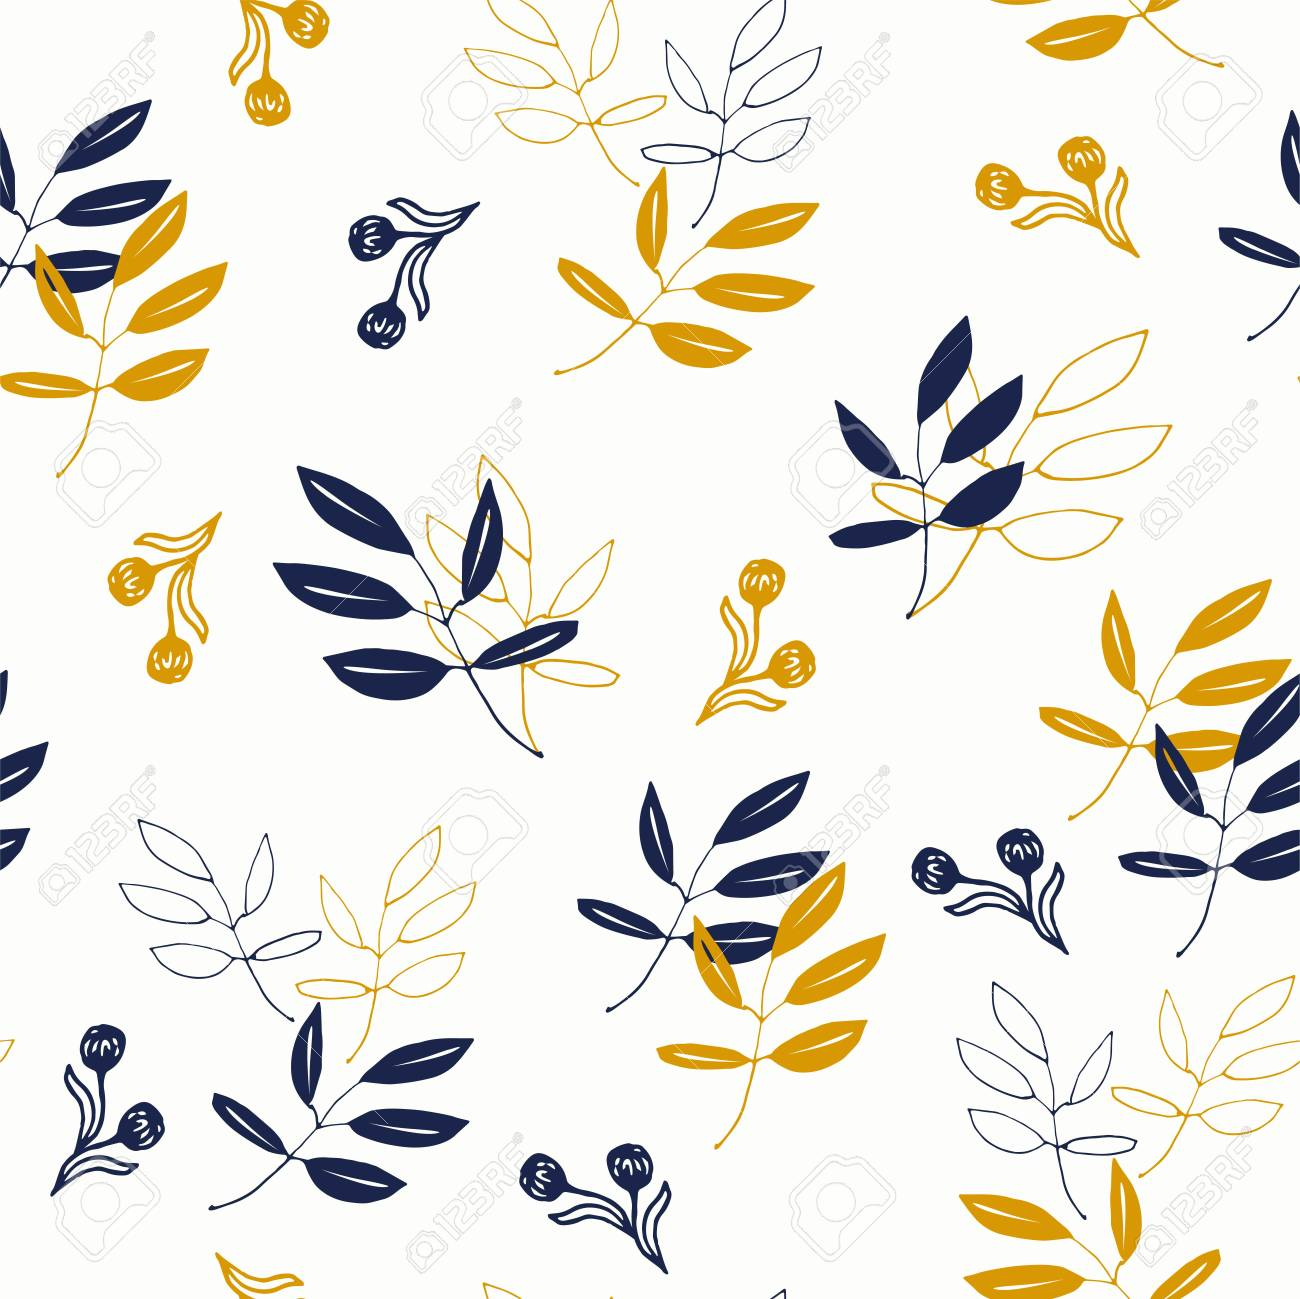 Tumbling Leaves In Navy And Mustard Yellow Royalty Free Cliparts